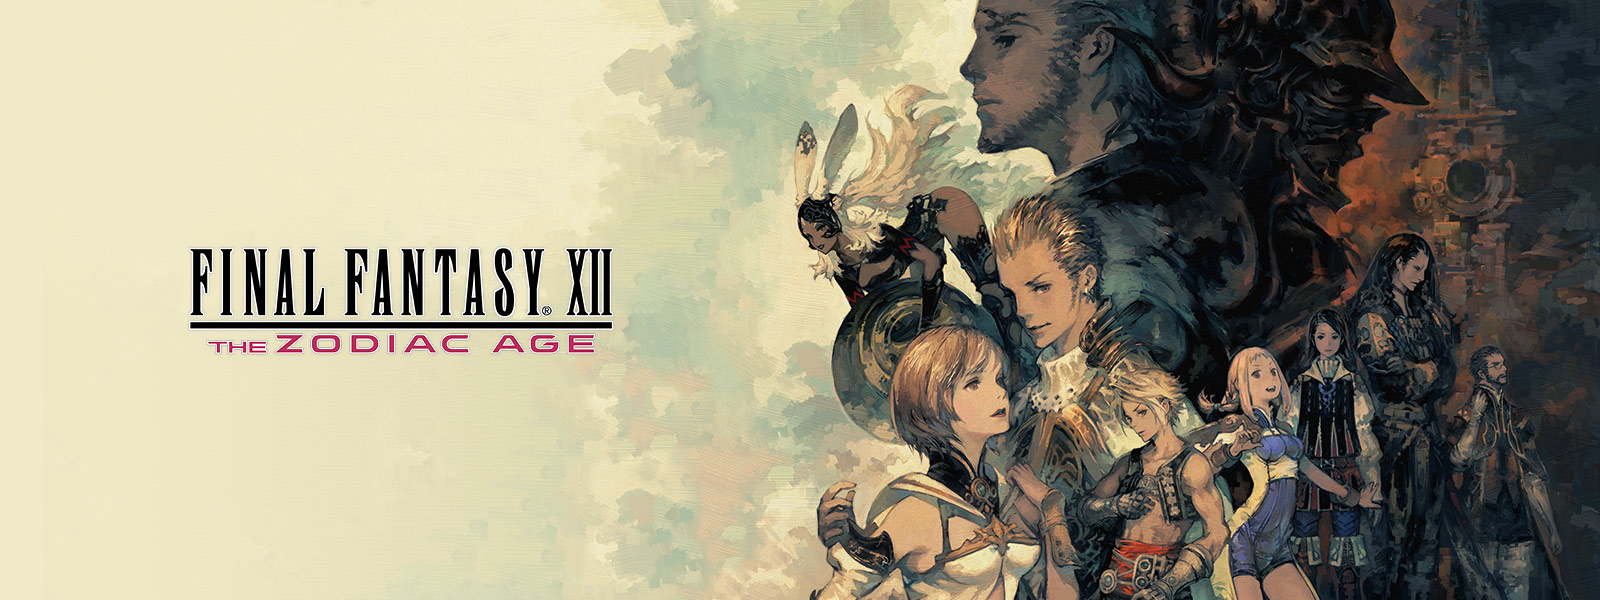 Montage av figurer från FINAL FANTASY XII THE ZODIAC AGE